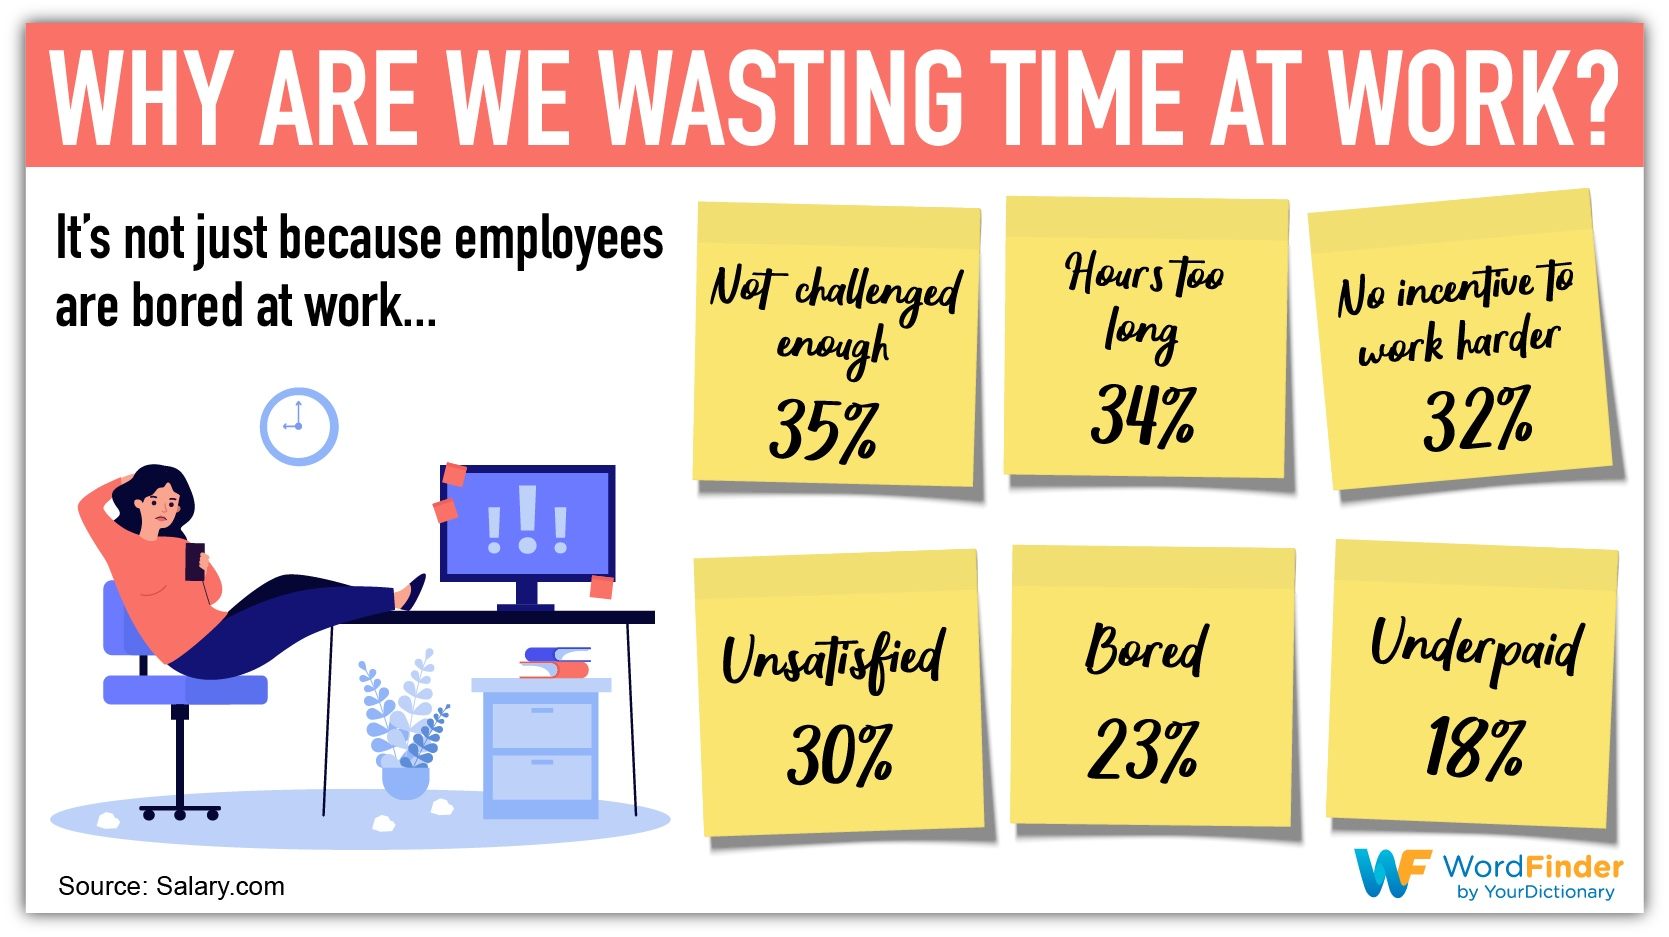 why are we wasting time at work infographic